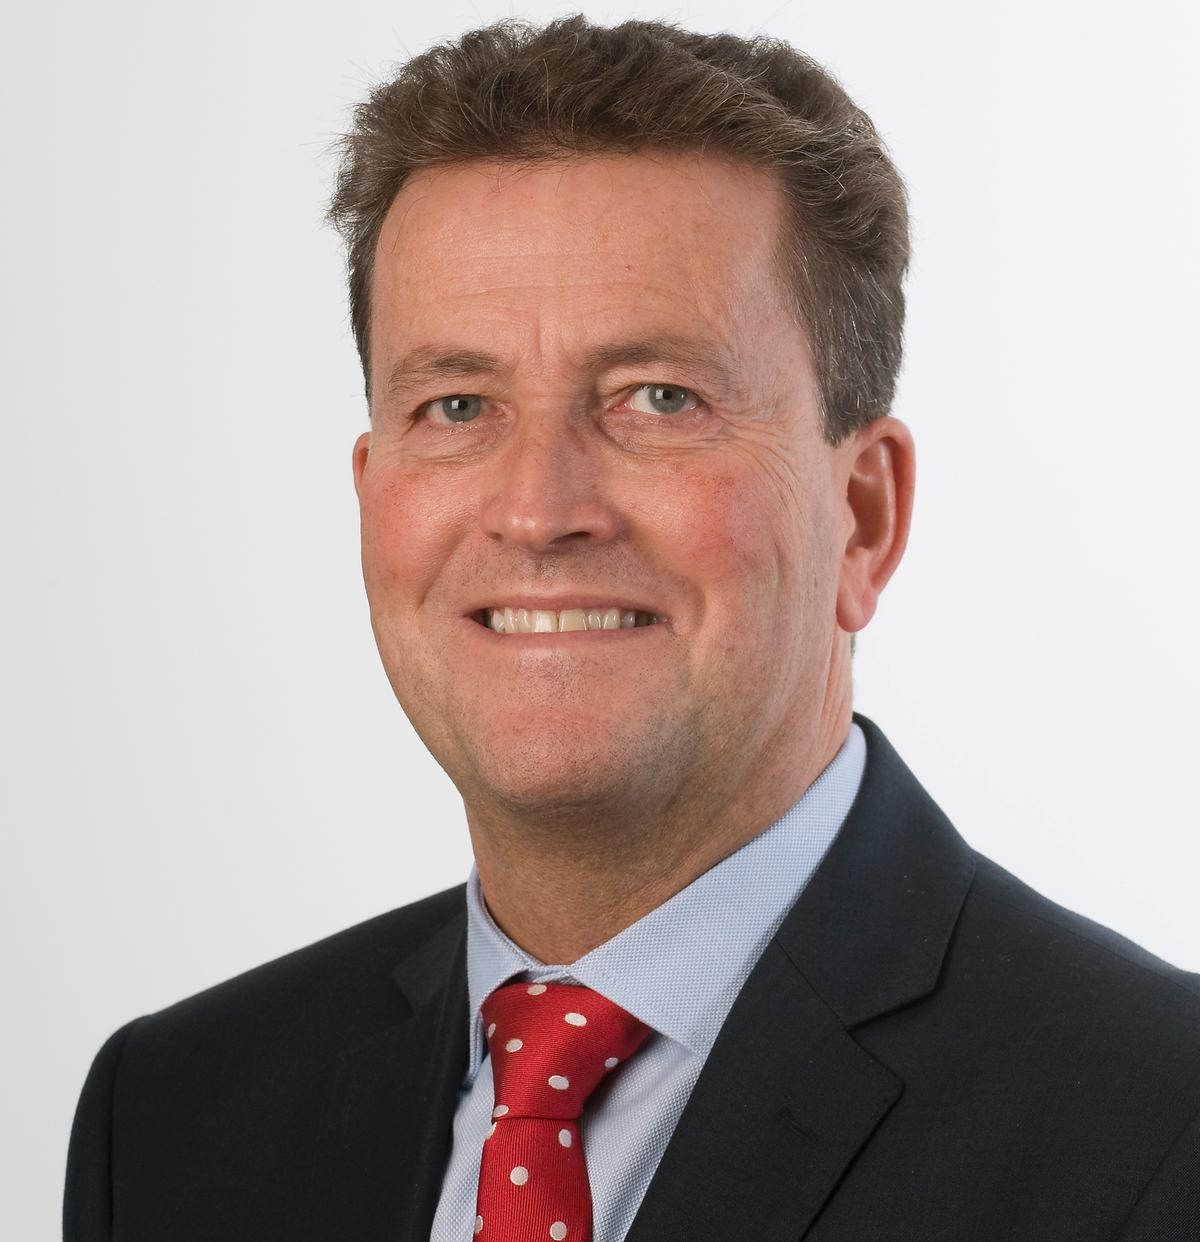 Hewett is a former business development director of Places for People Leisure